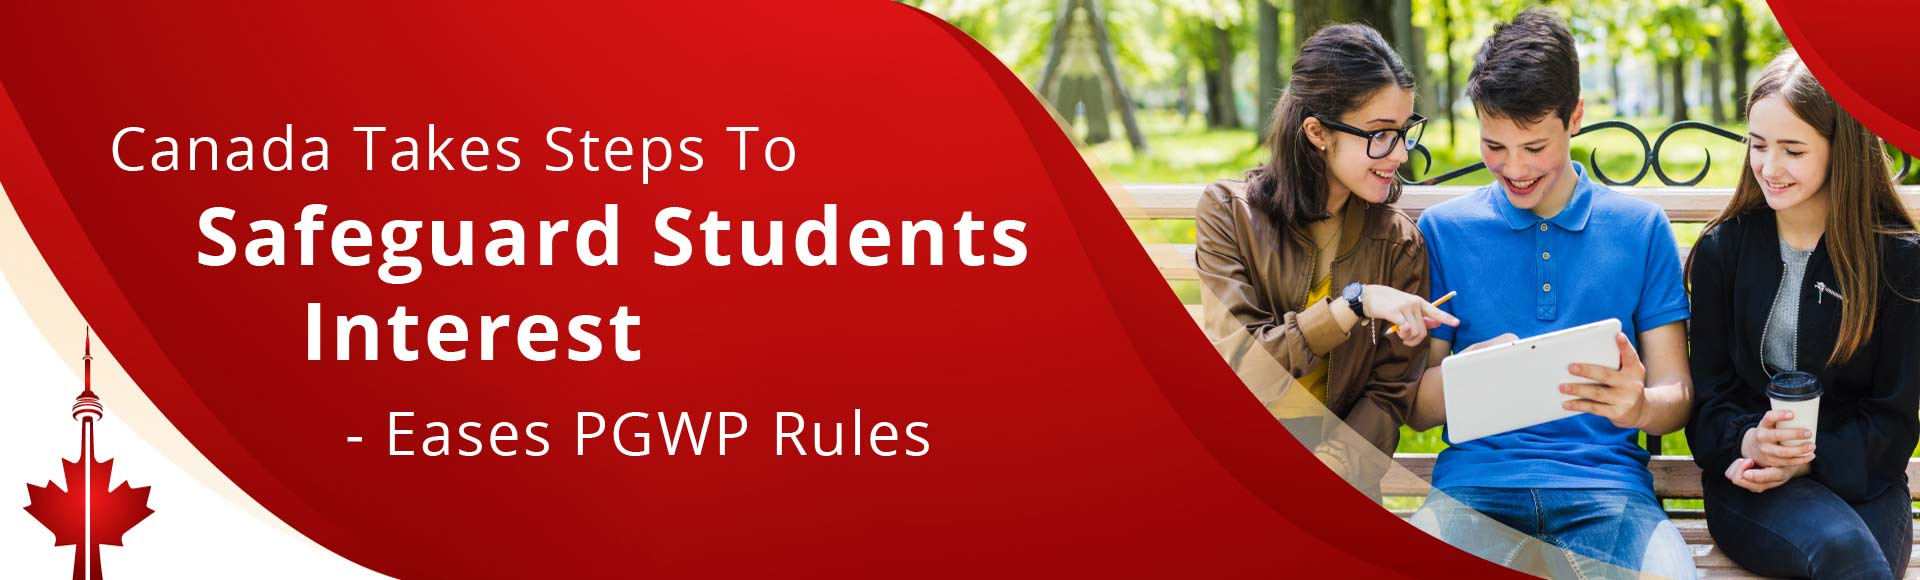 Canada takes steps to safeguard students' interest - eases PGWP rules